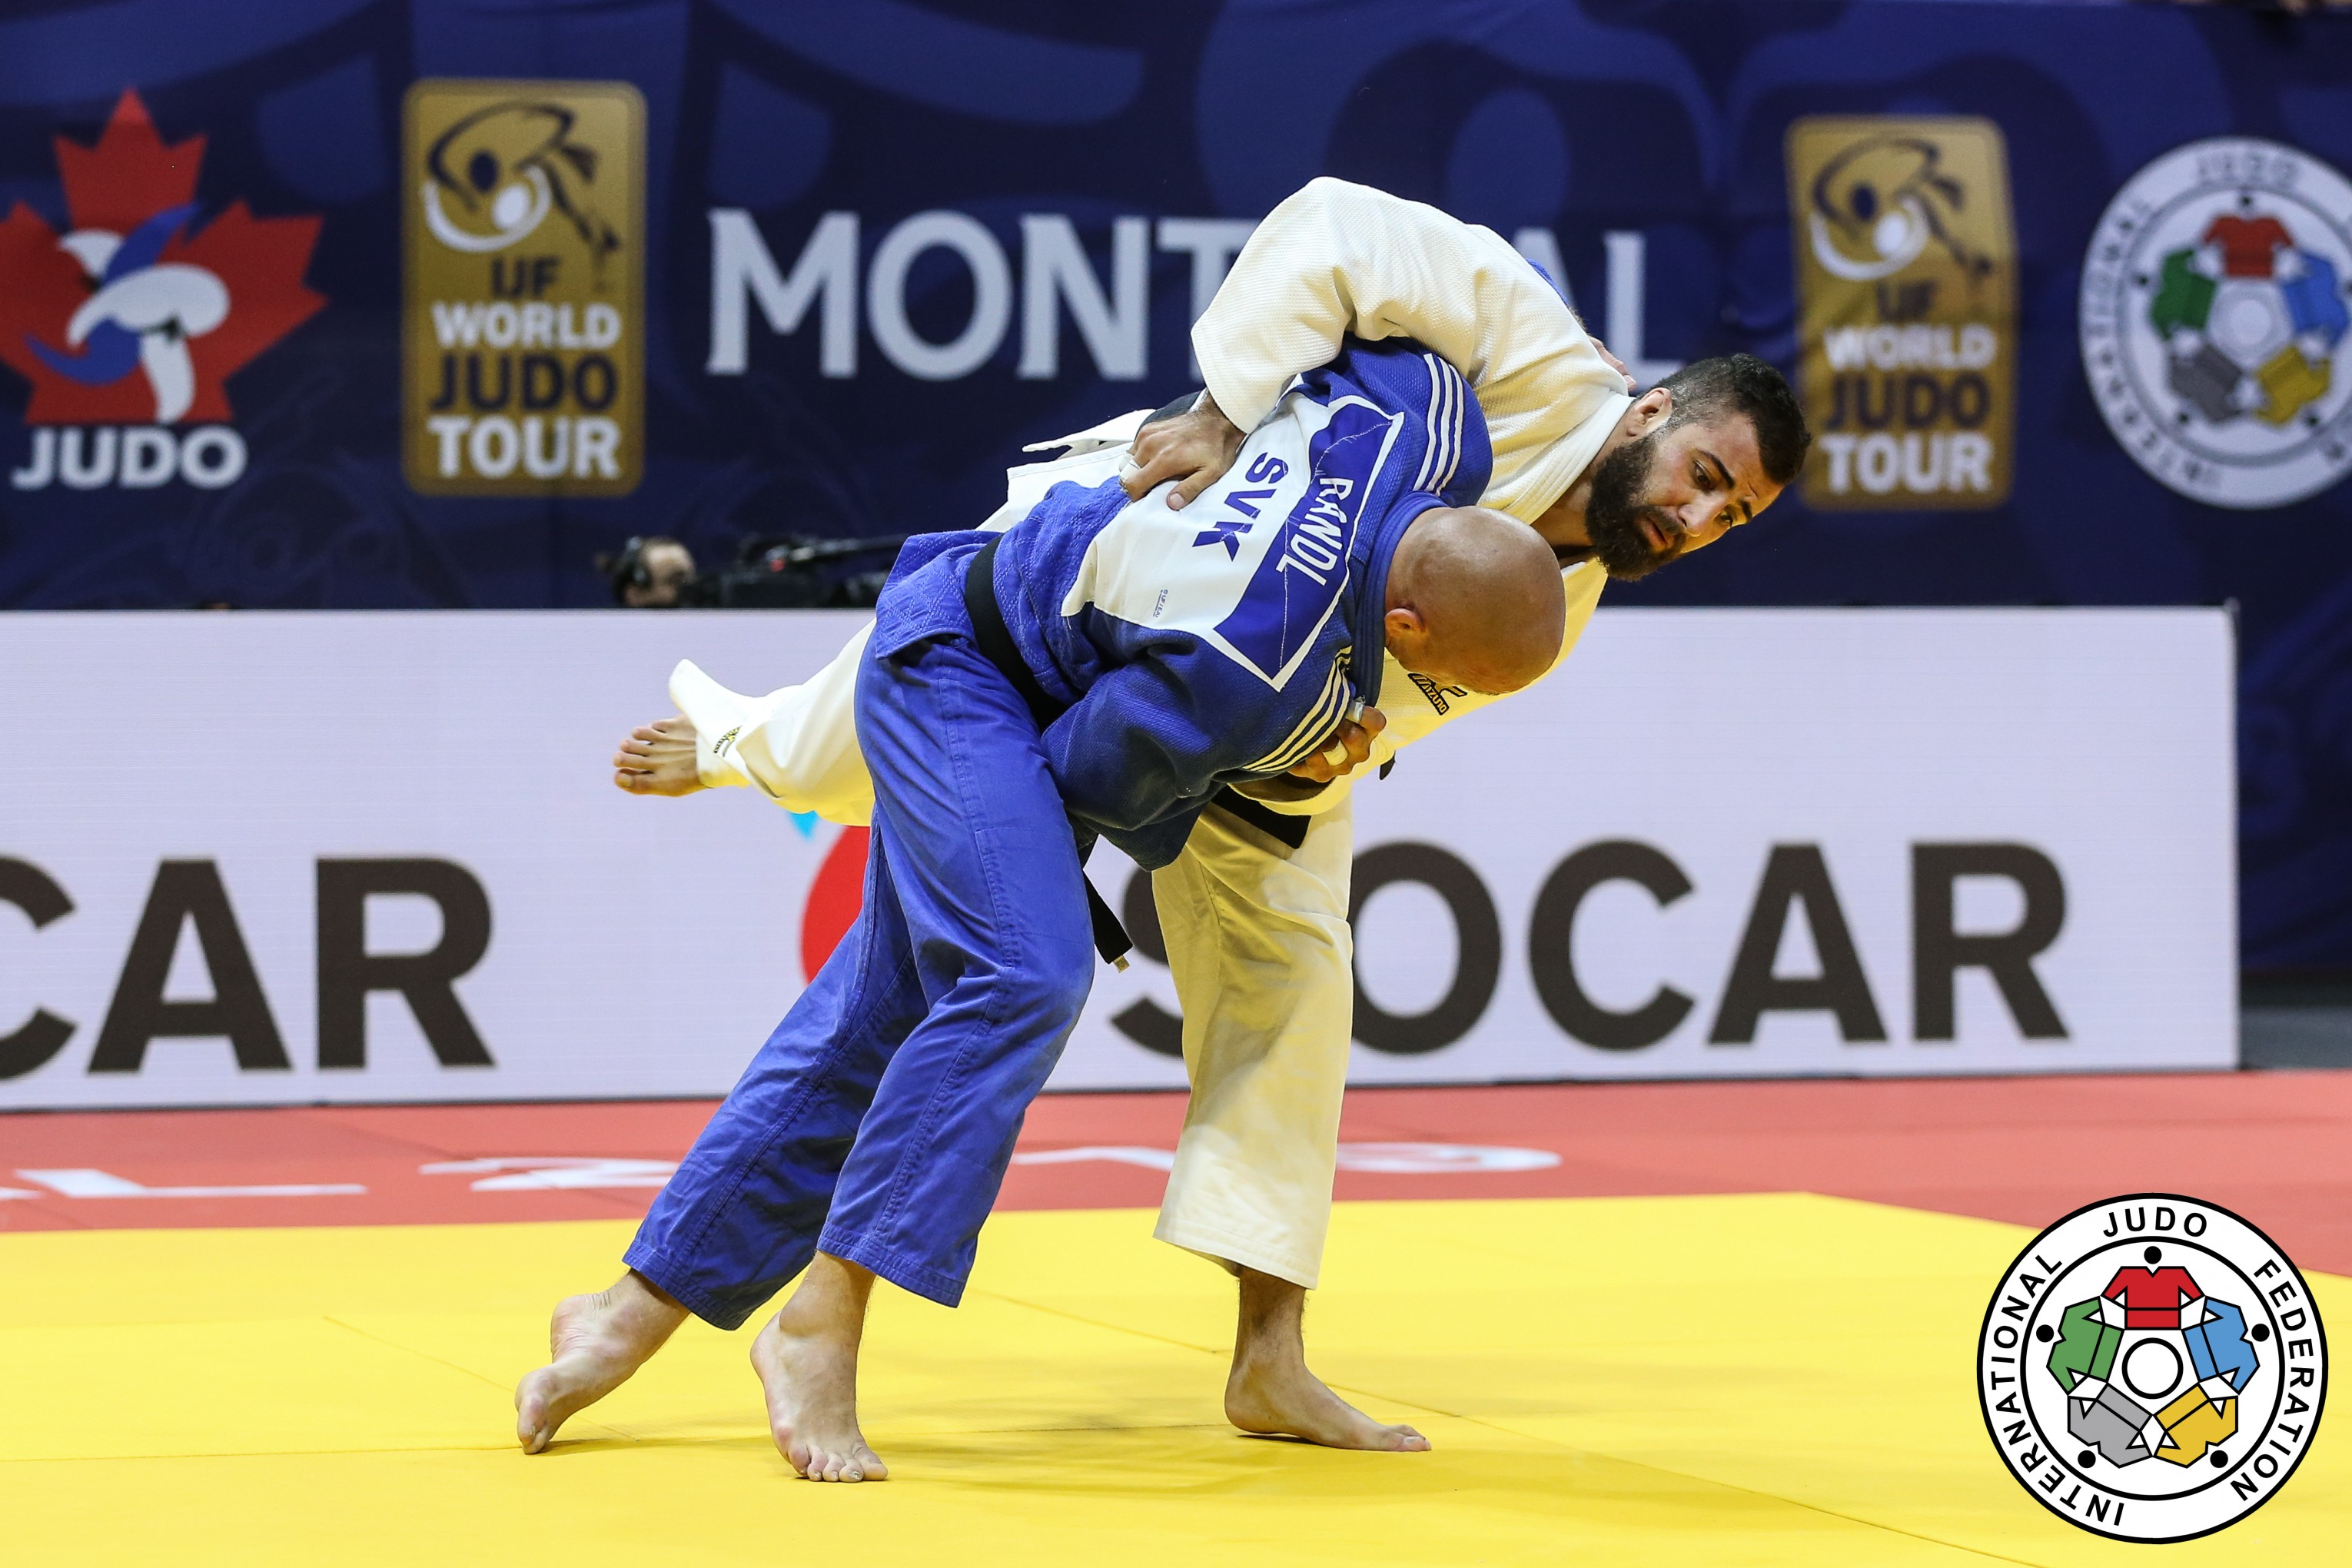 Mohab El Nahas flipping an opponent on his back